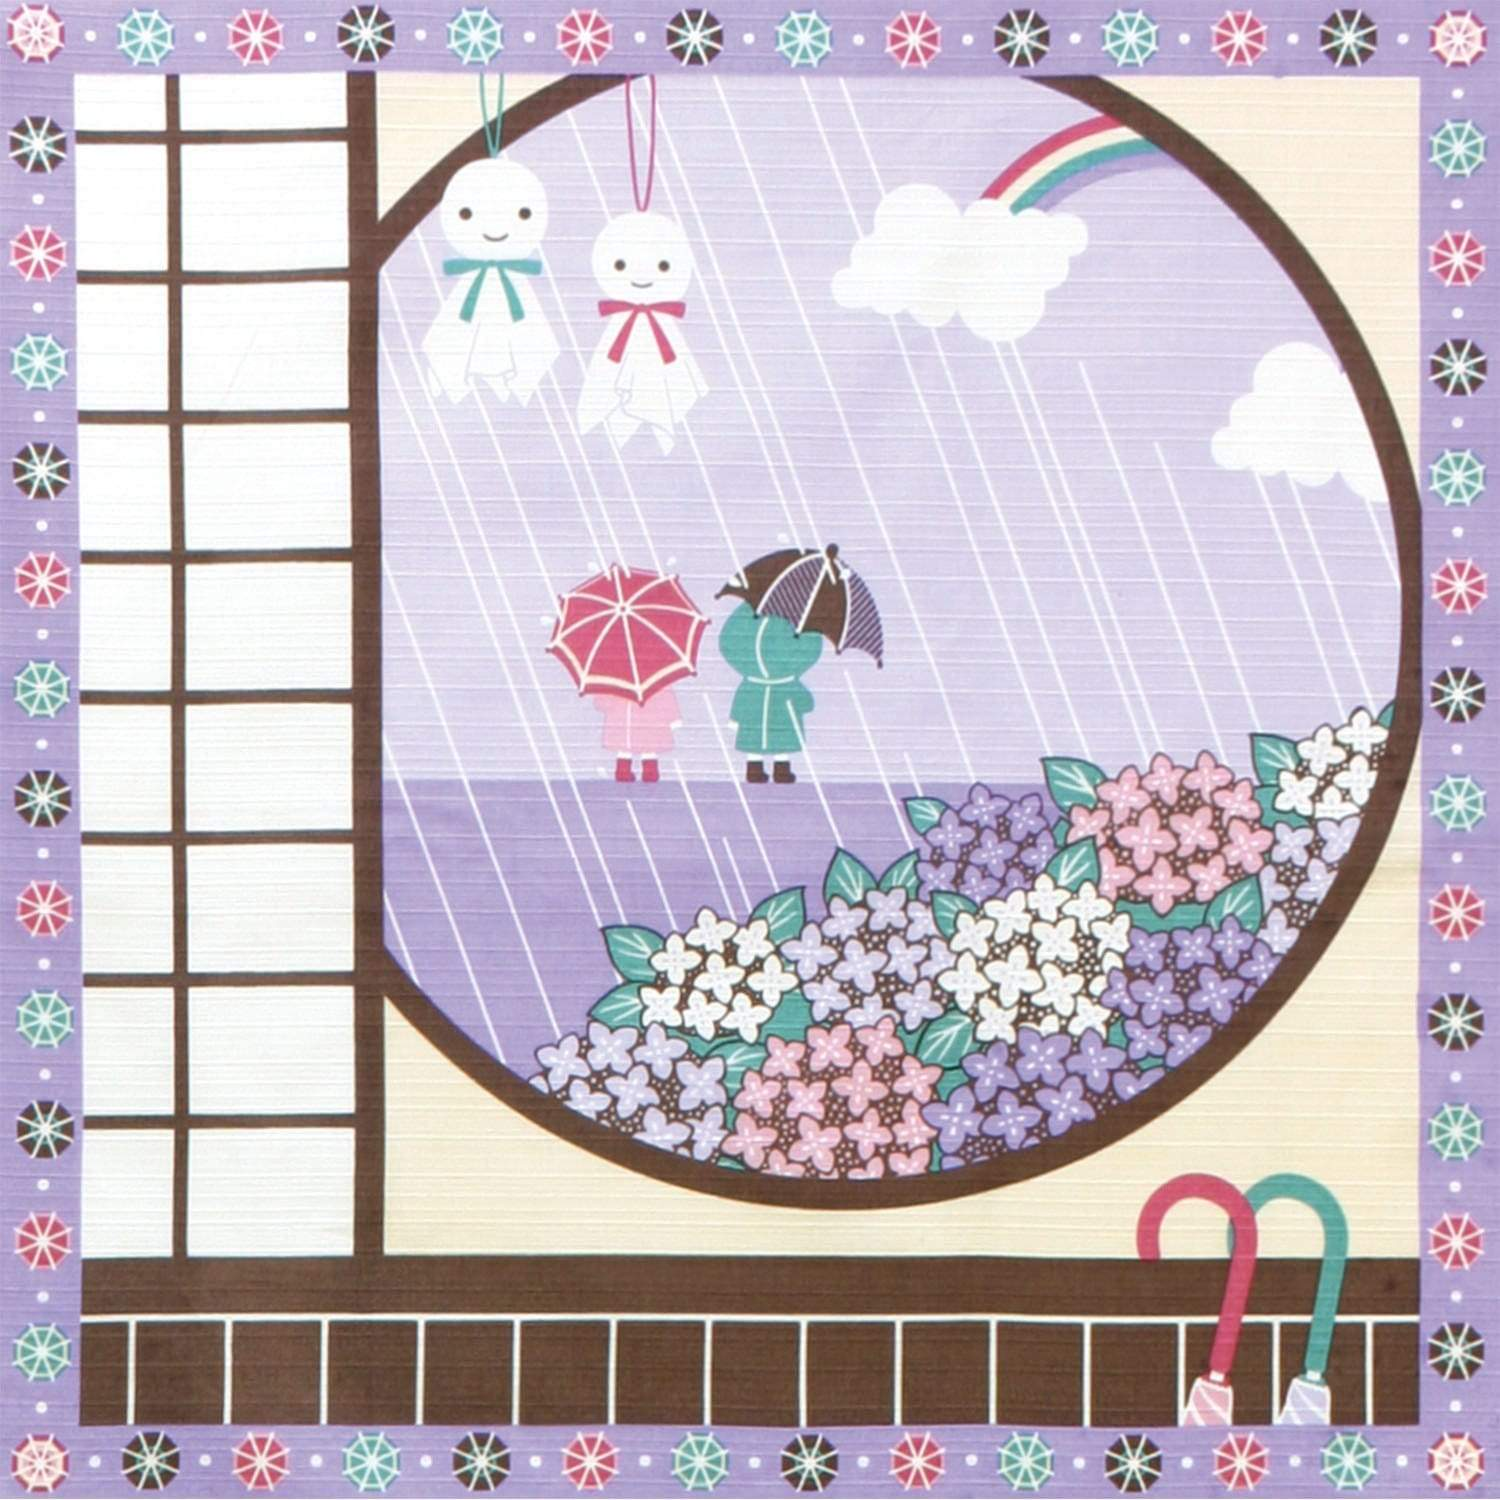 Maeda Senko Cotton Furoshiki Bento Lunch Cloth Rain in Early Summer Furoshikis